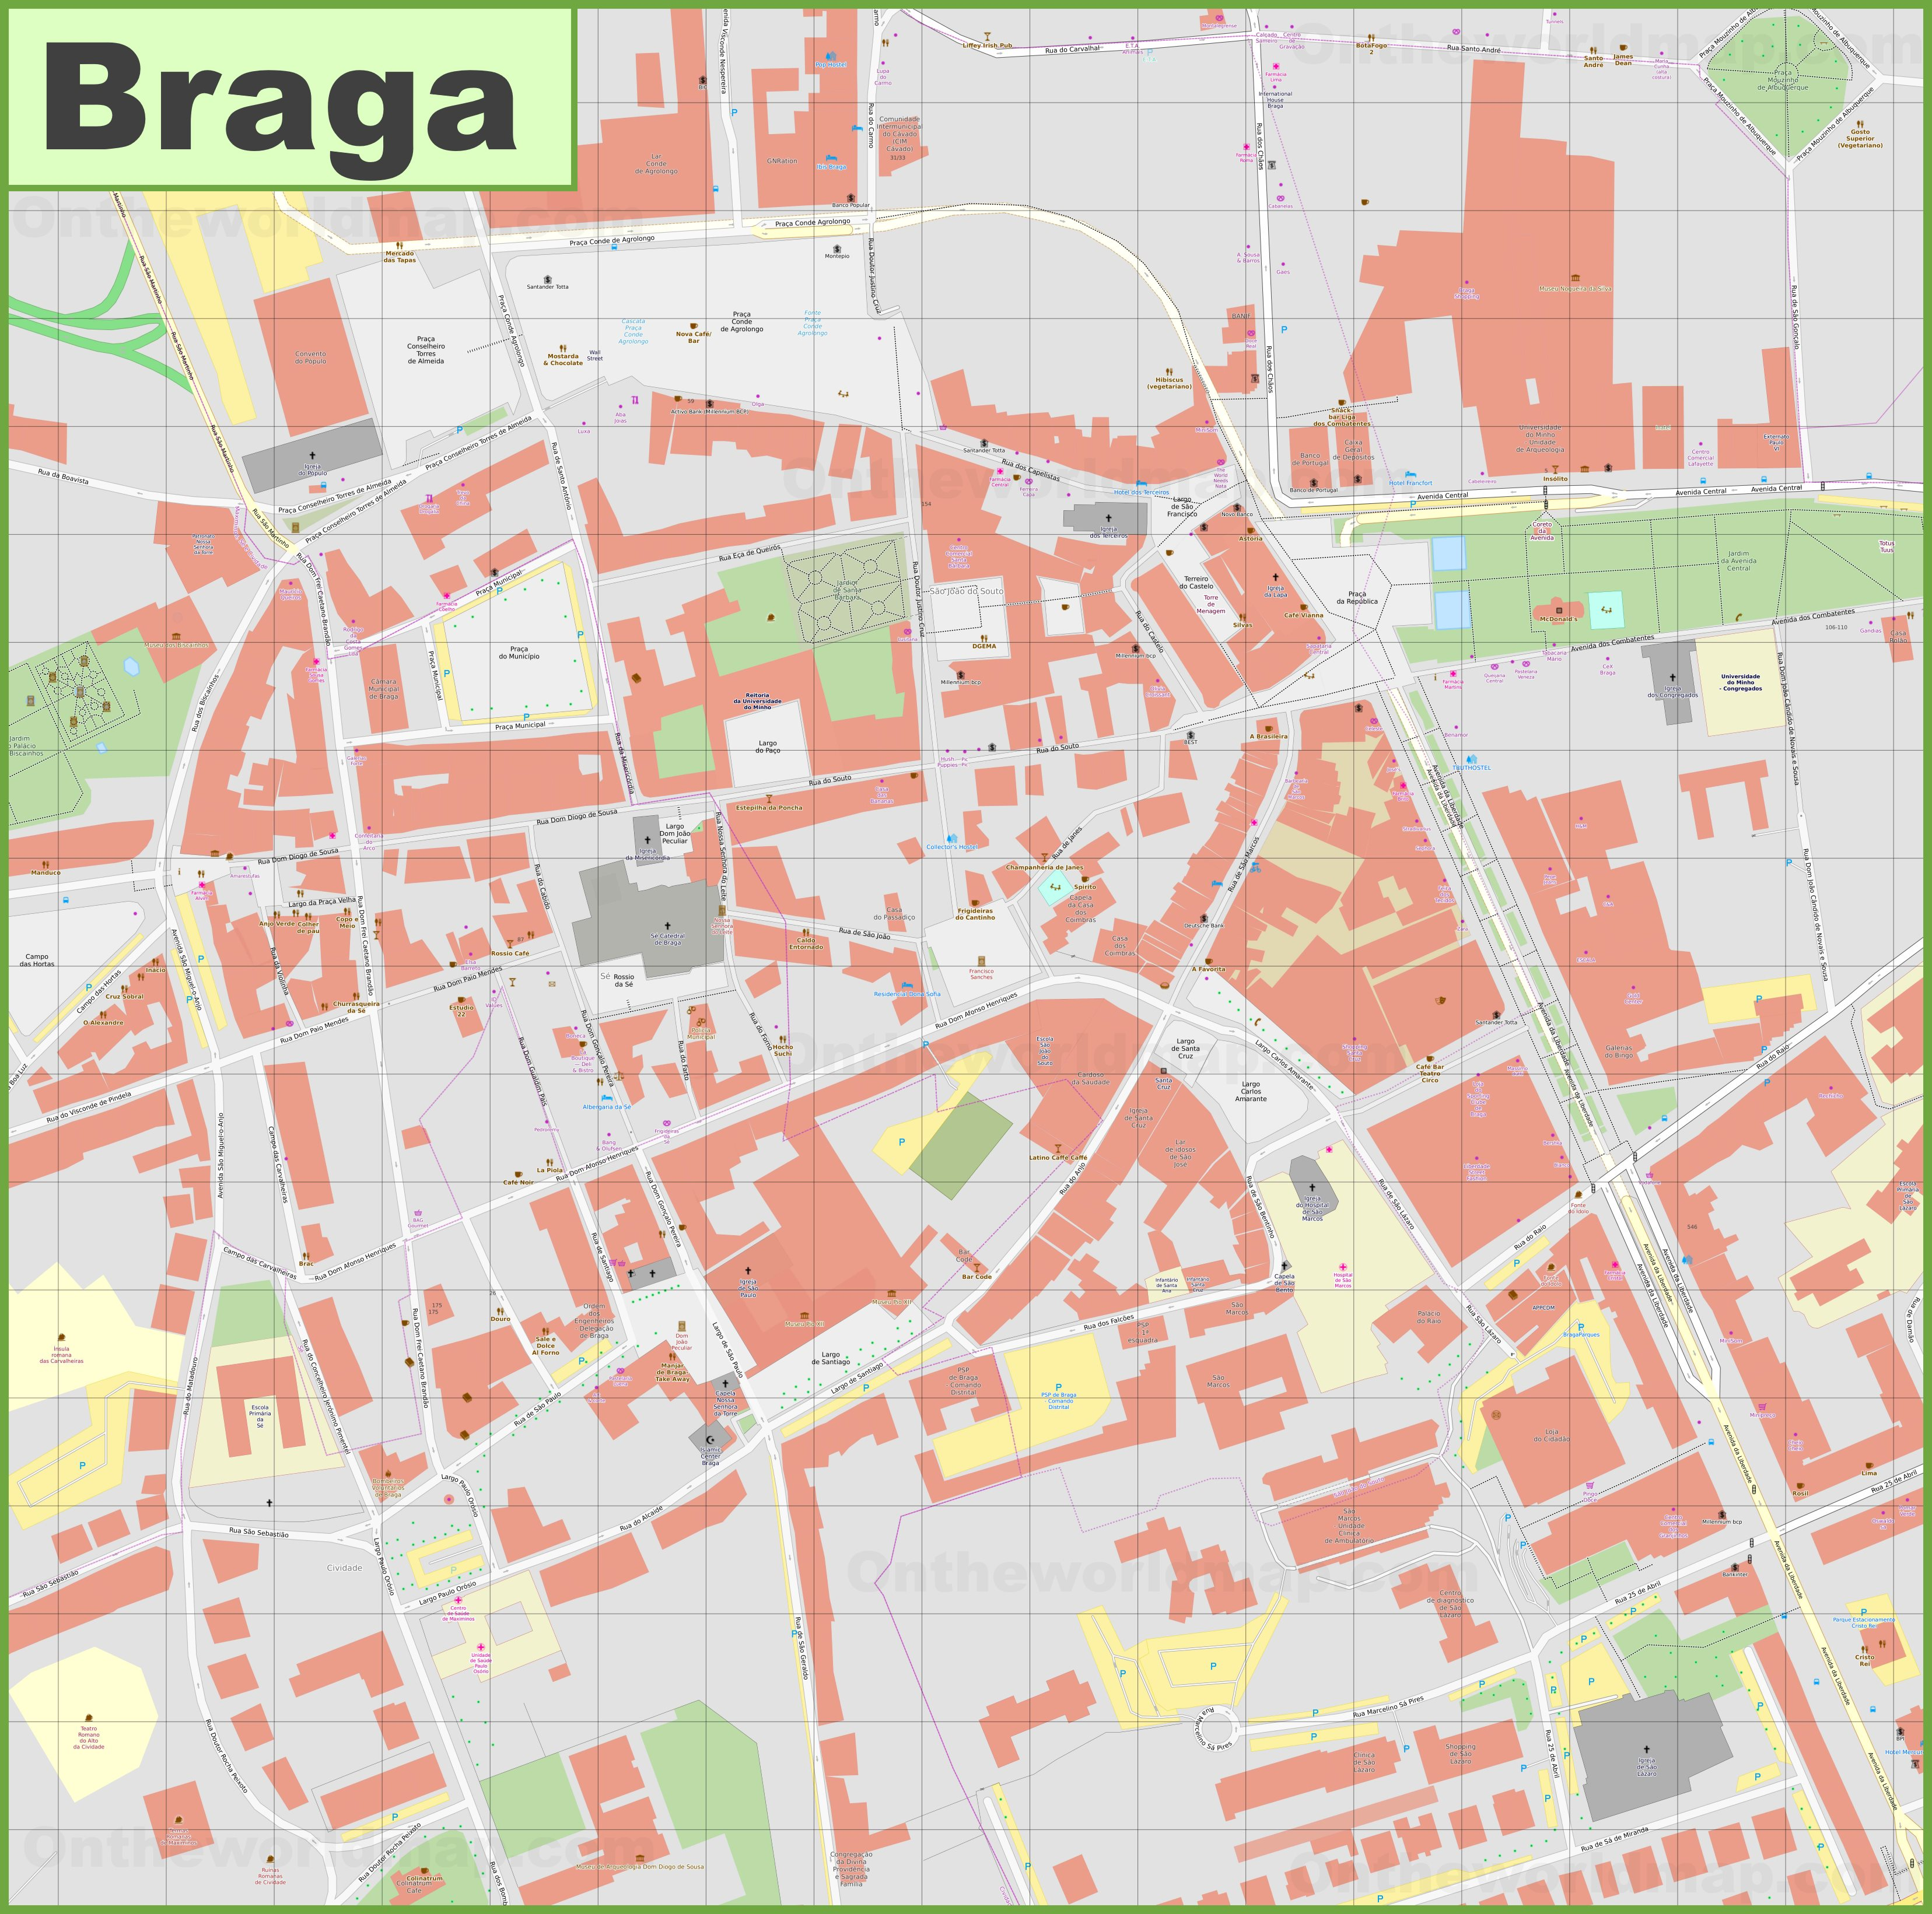 Braga city center map